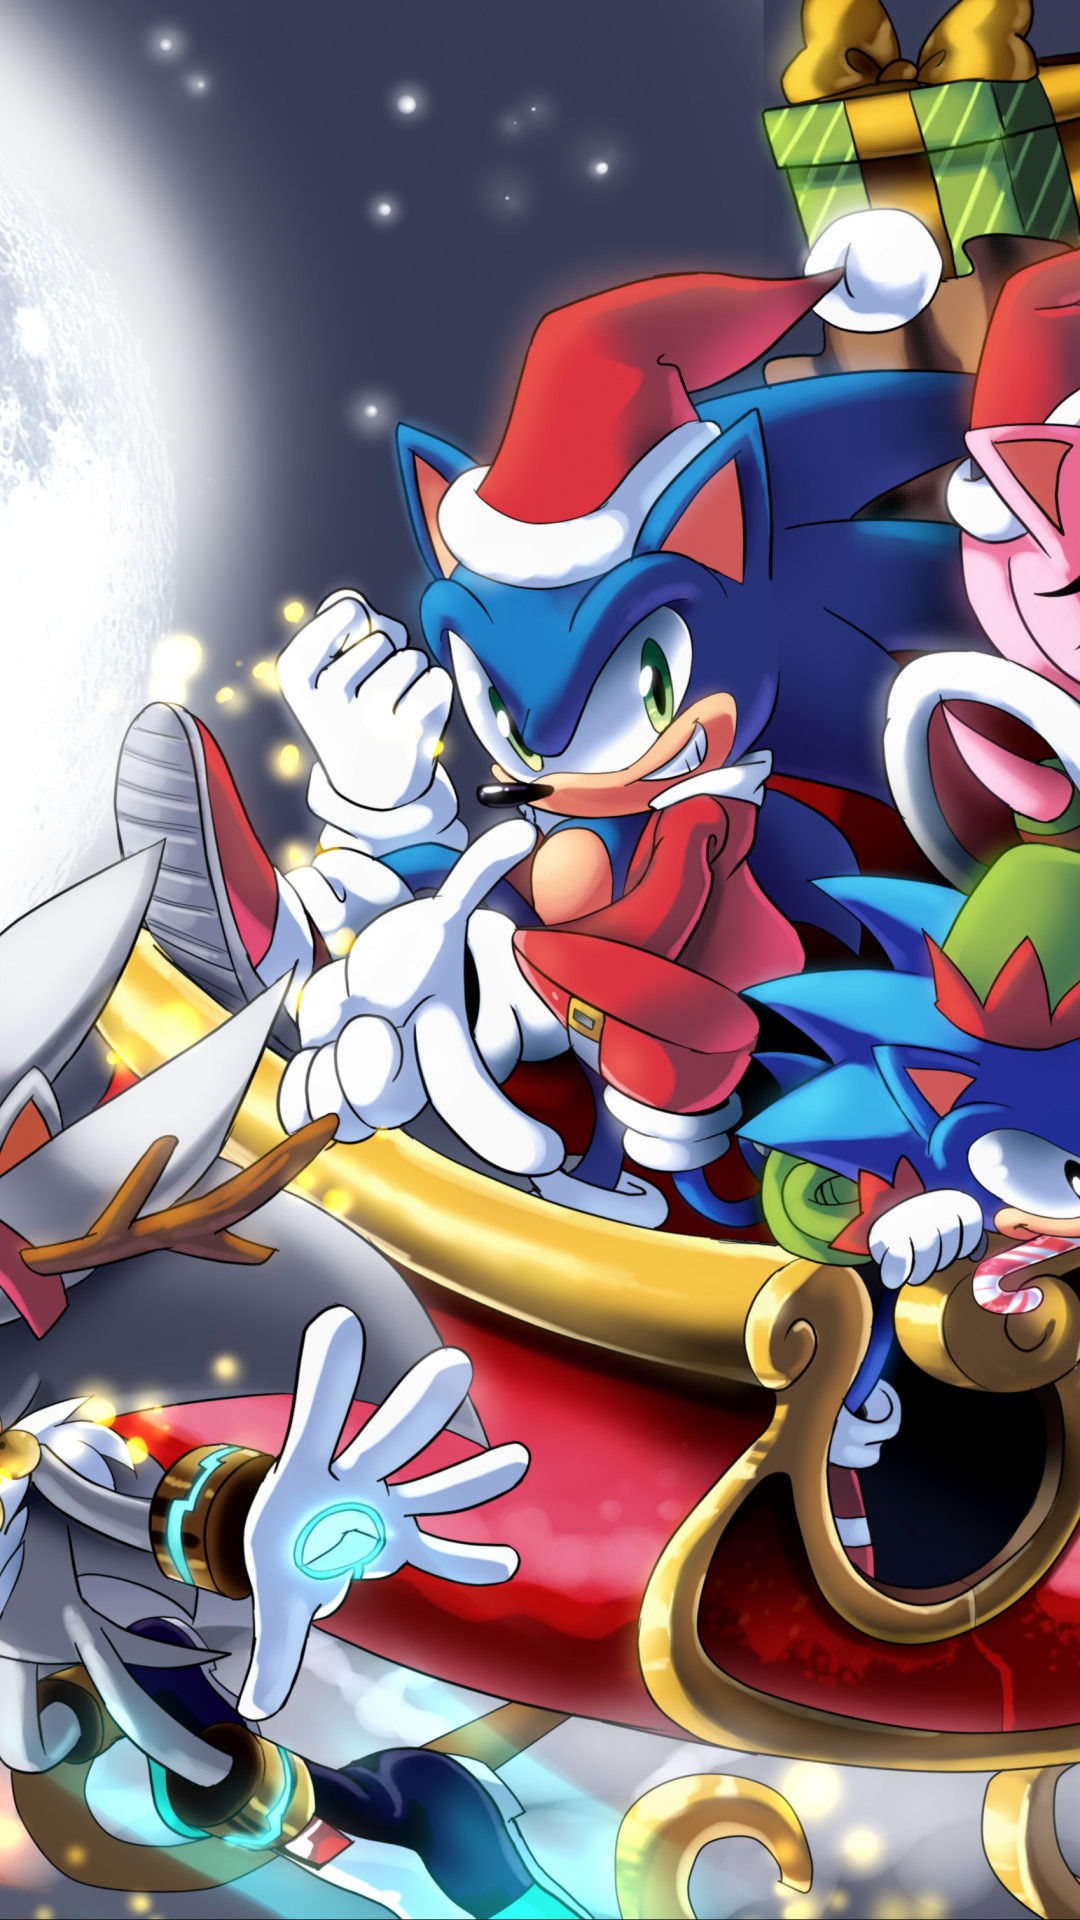 Sonic the Hedgehog Wallpaper (76+ images)